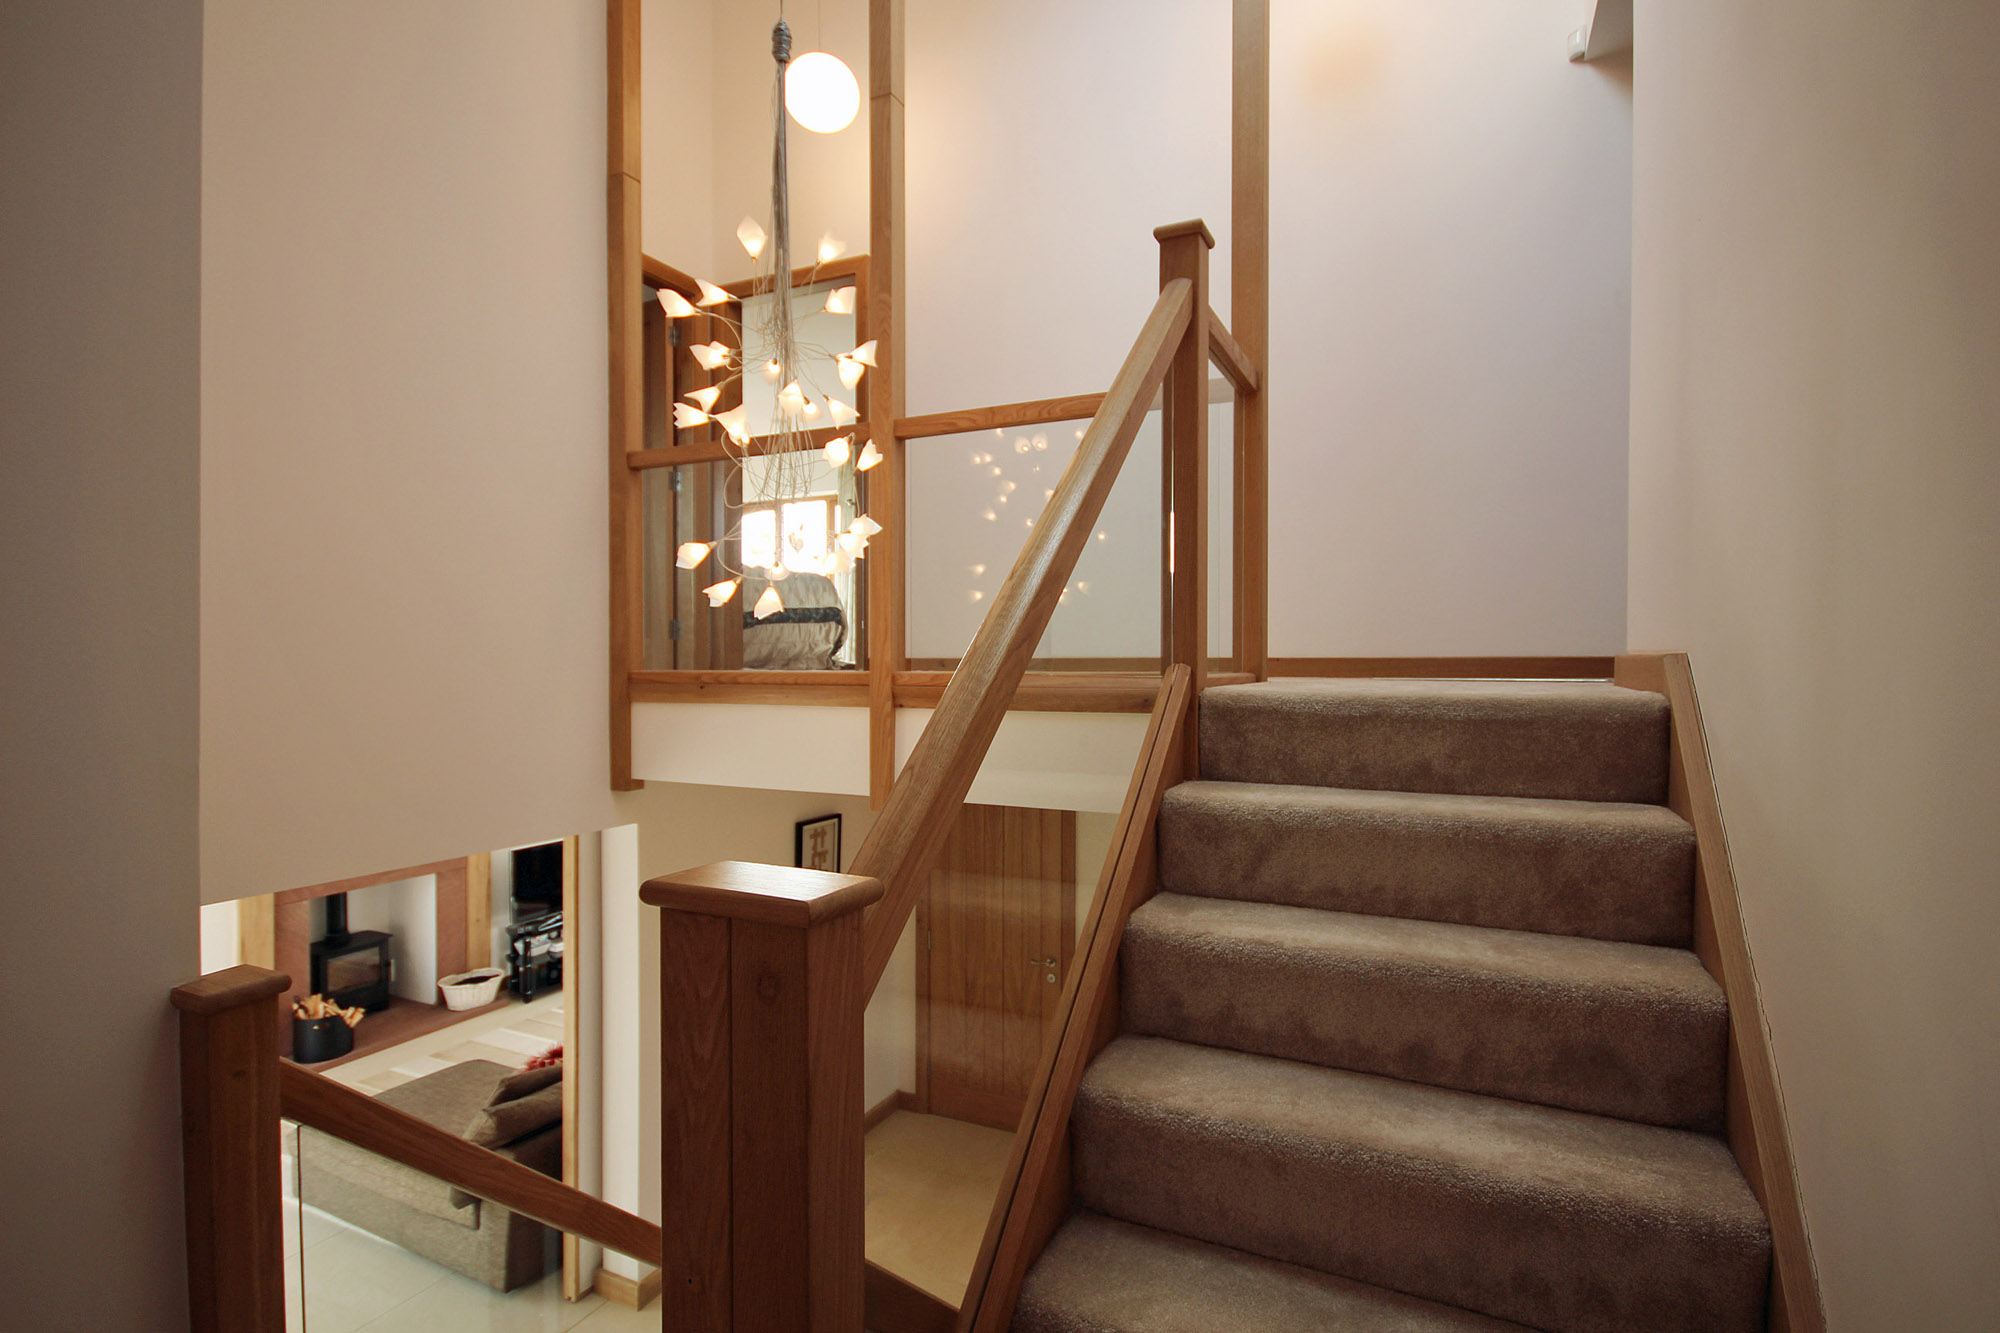 Stair of new house